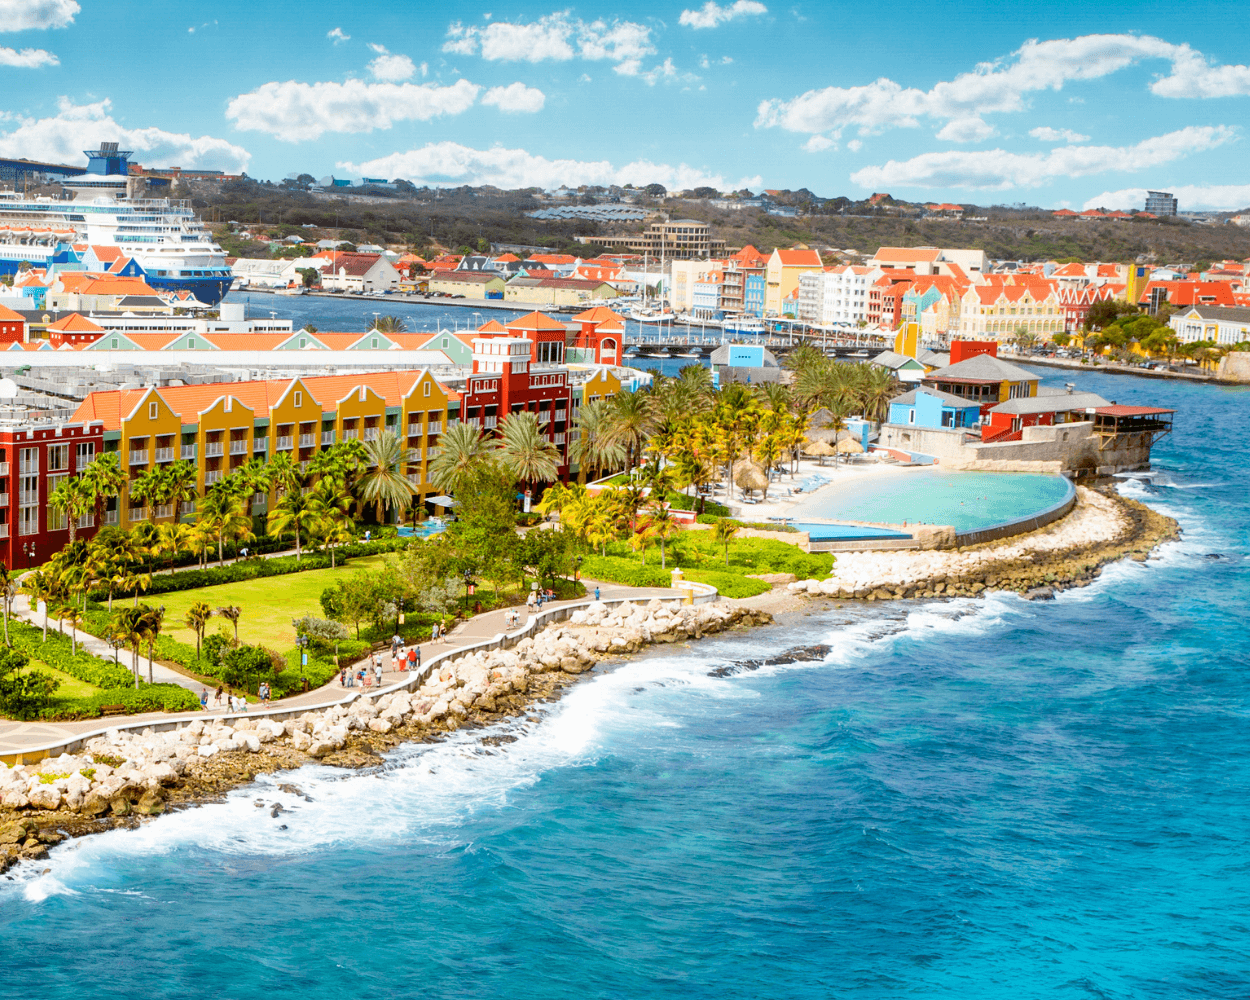 Renaissance Resort Willemstad Curacao